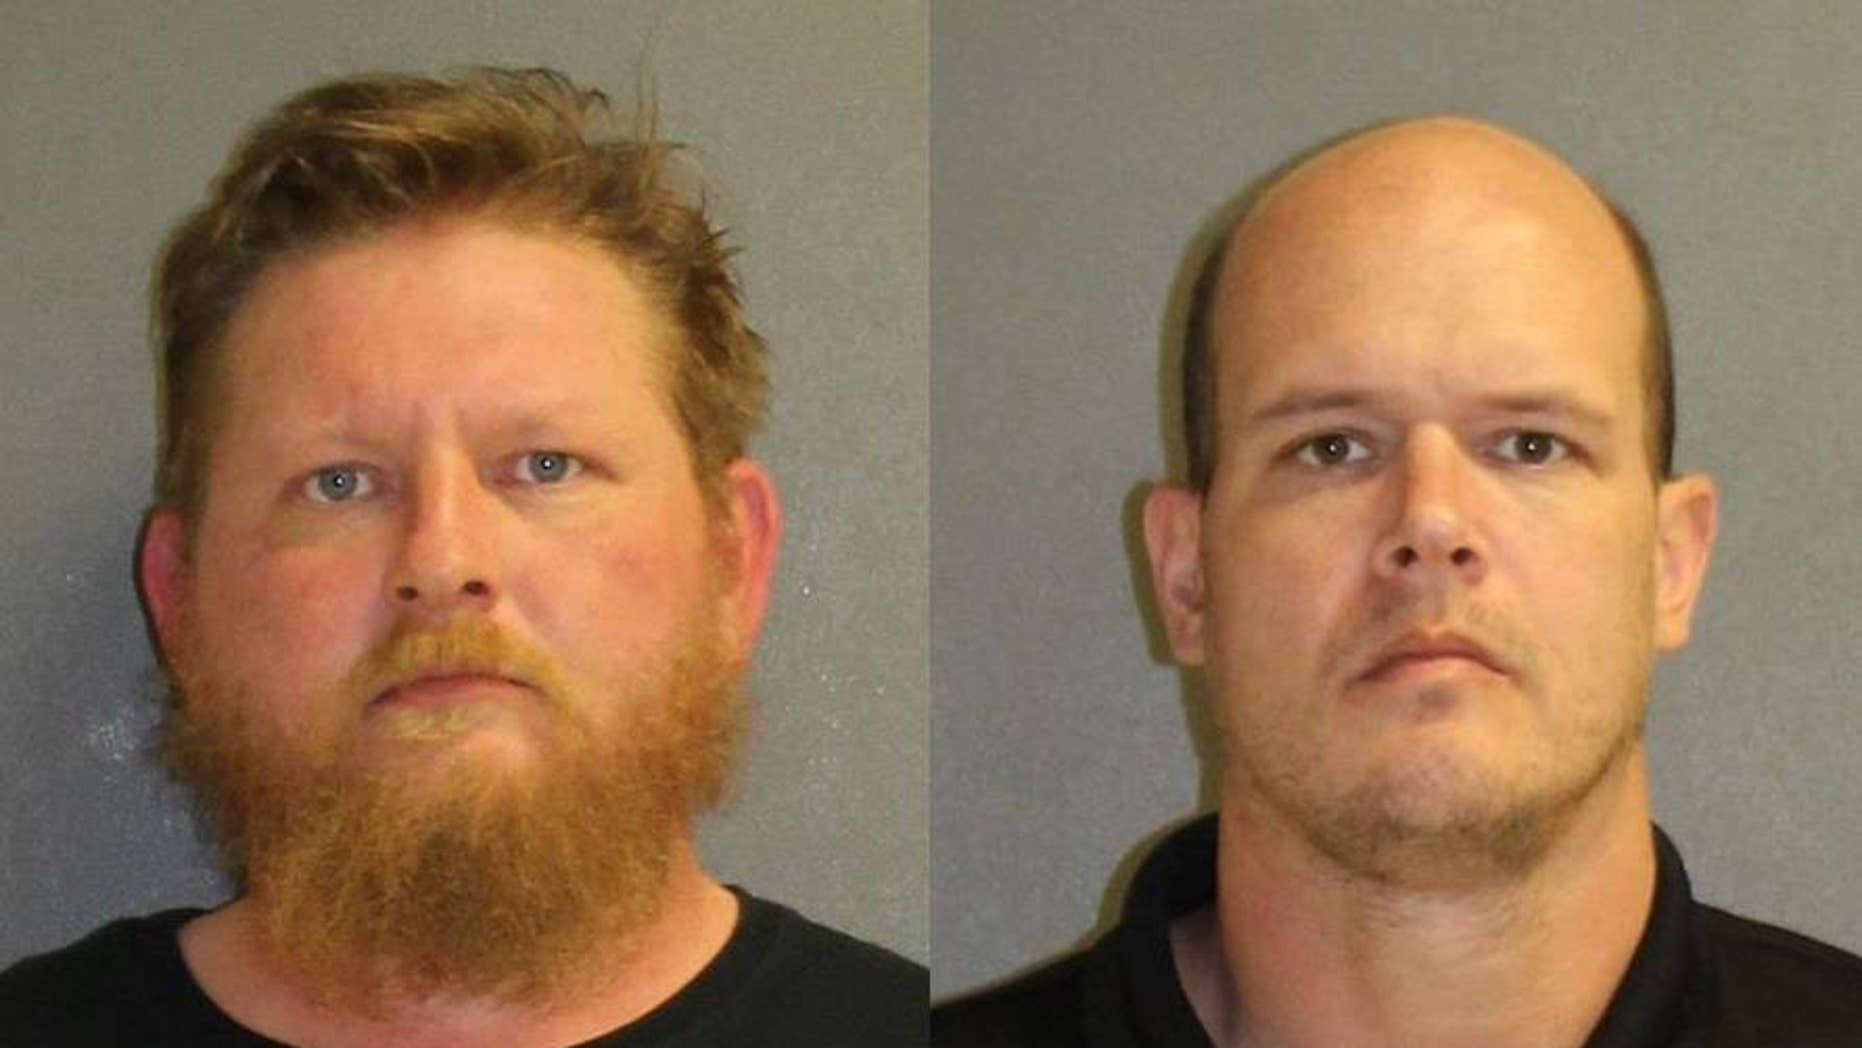 Lafe Best, 37, (left) and Benjamin Worster, 39, (right) were accused of trying to groom and rape a 3-year-old girl.